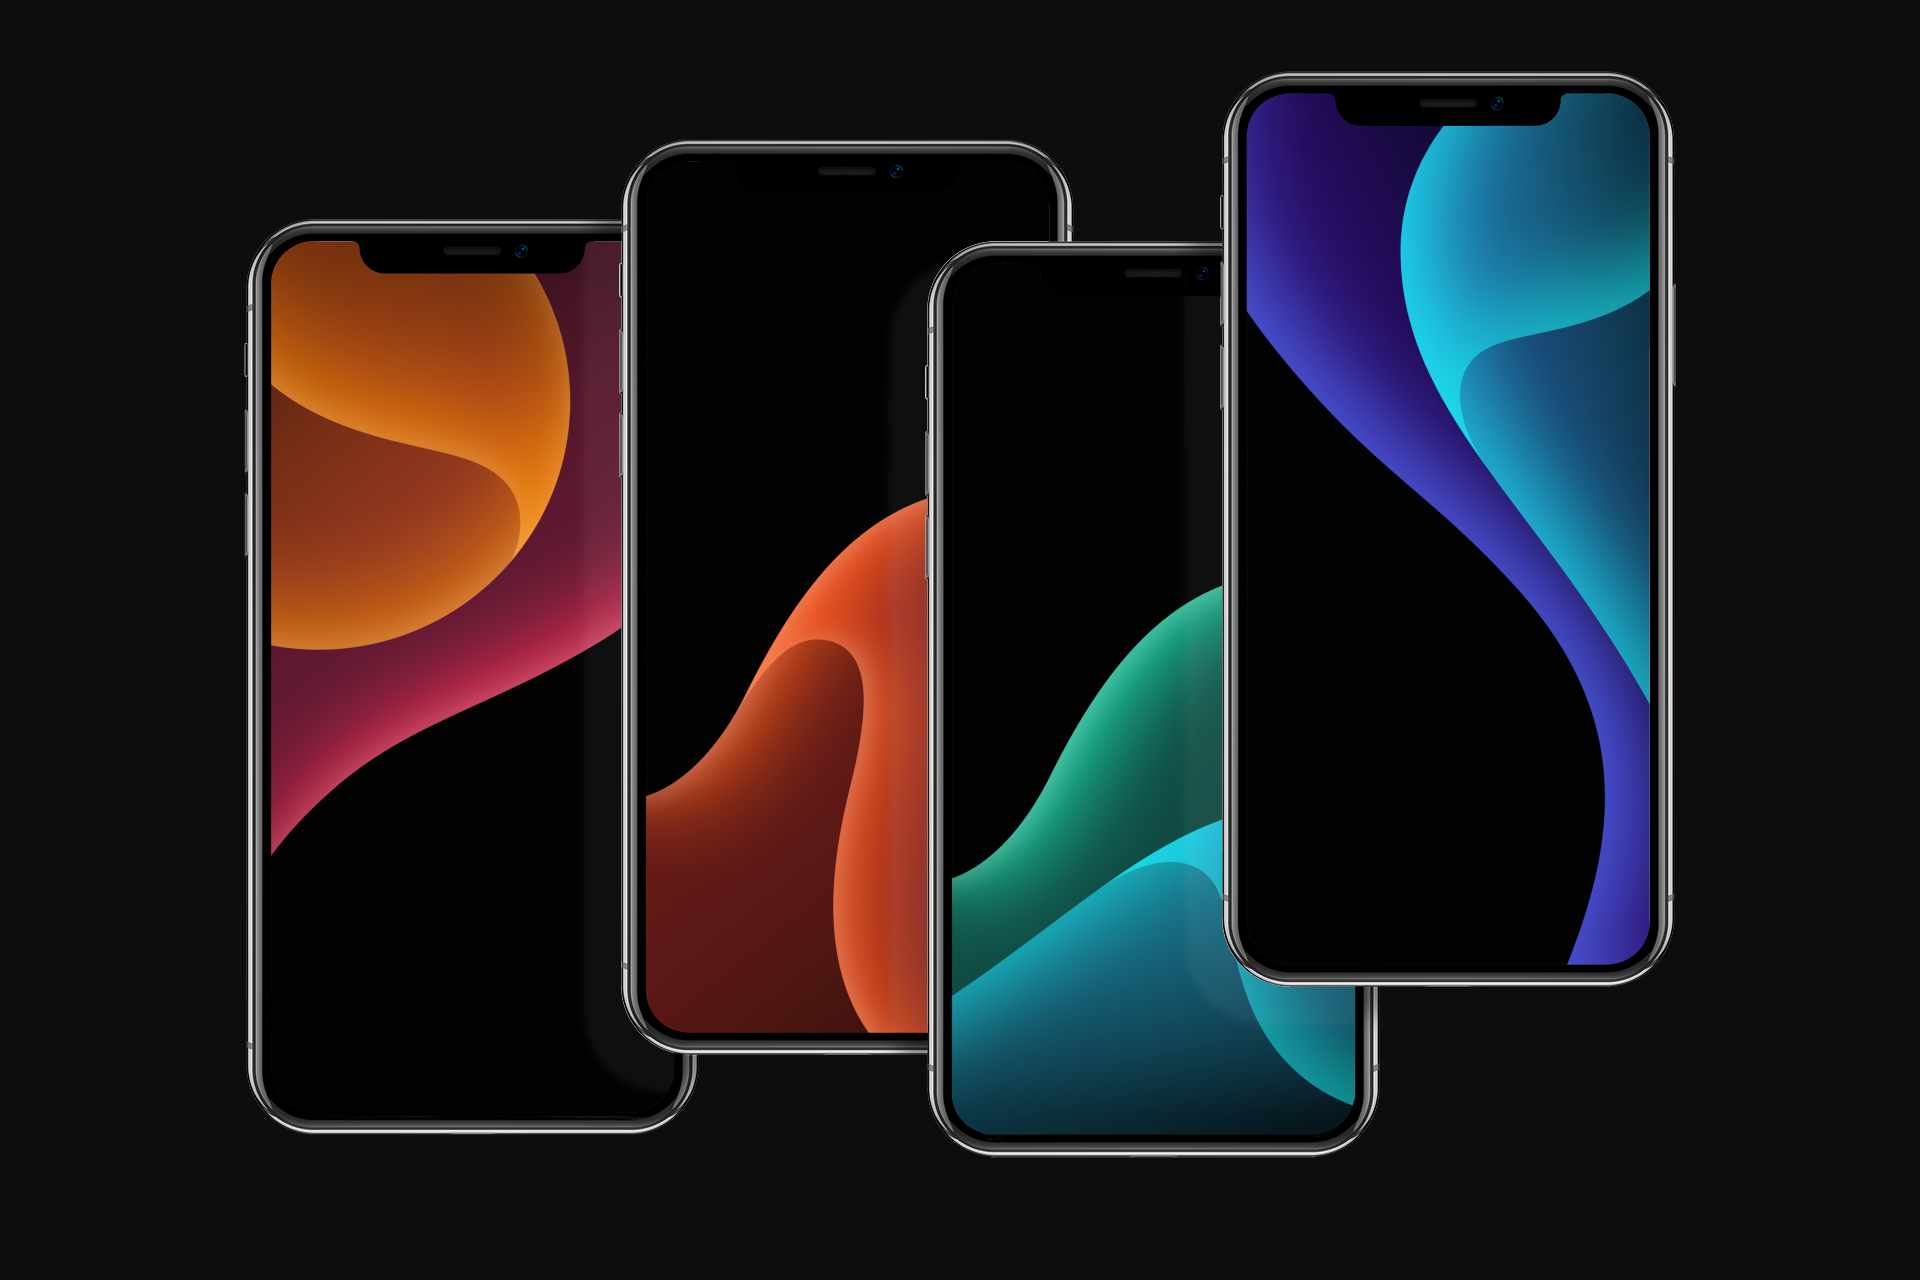 Fold Wallpaper preview image